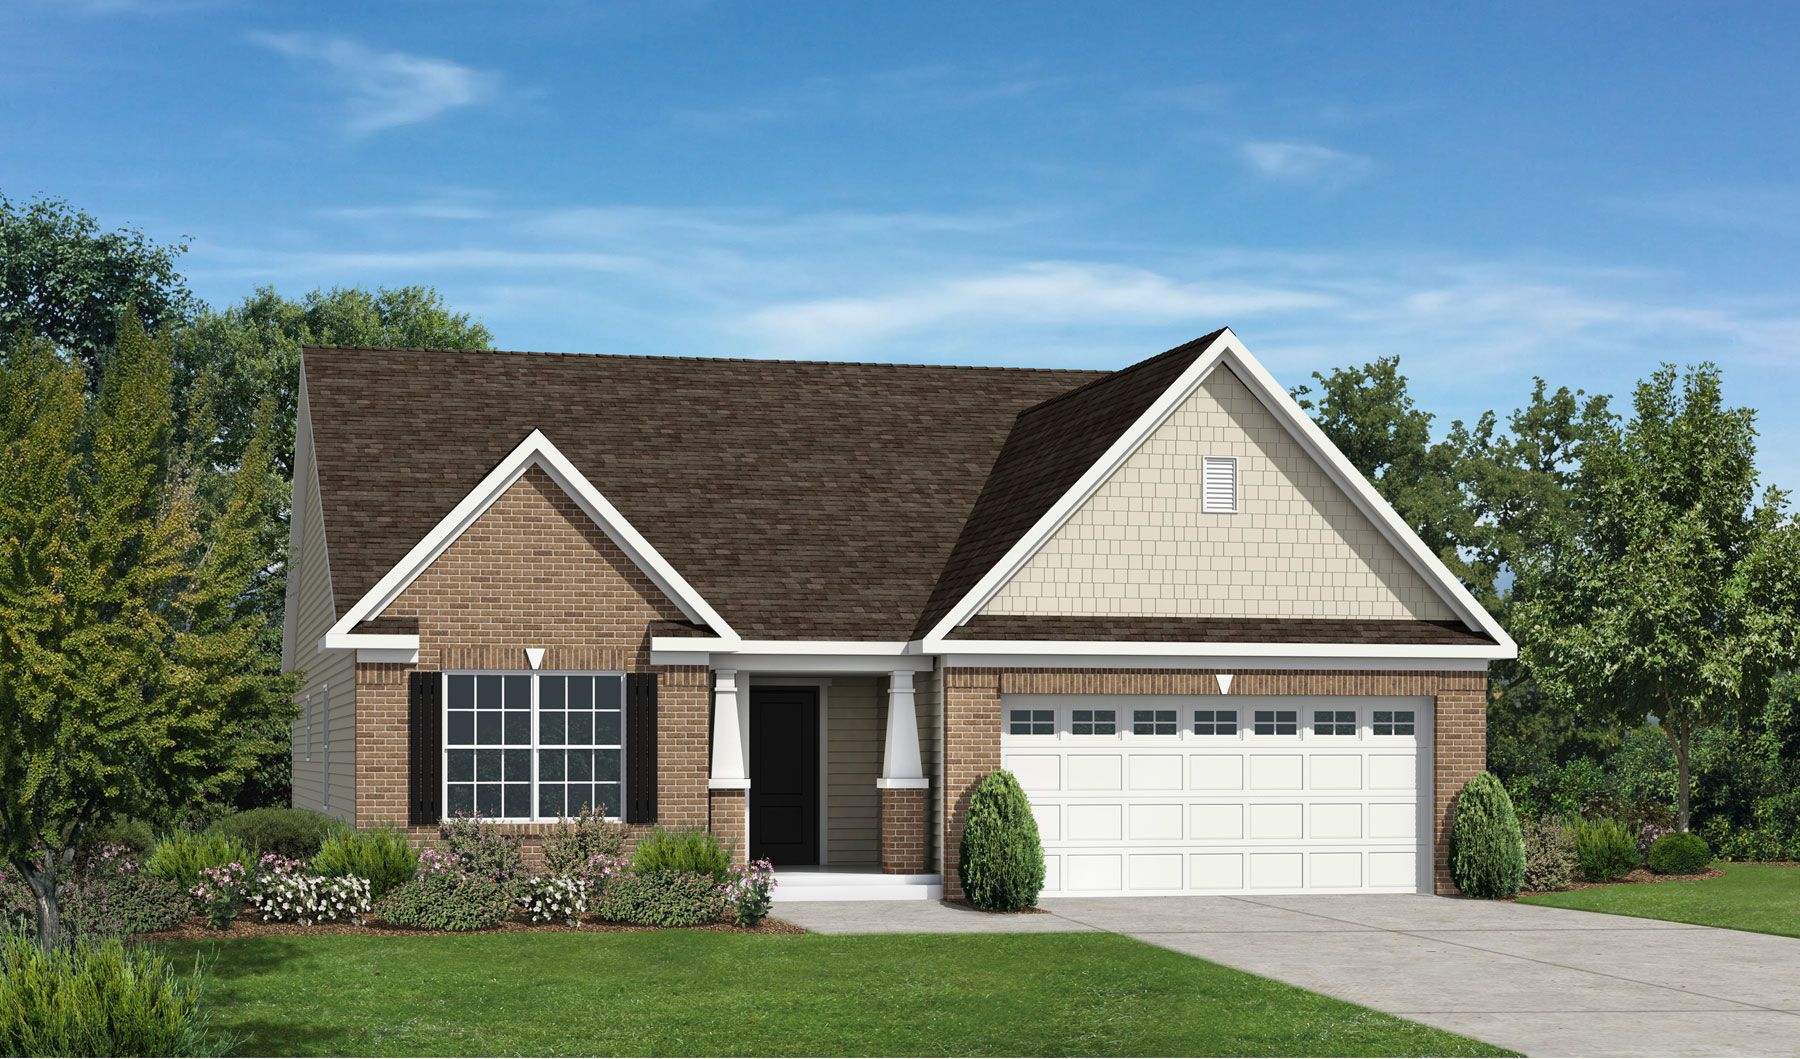 Heyden - Winding Ridge-Fairways East: Indianapolis, IN - Westport Homes of Indianapolis